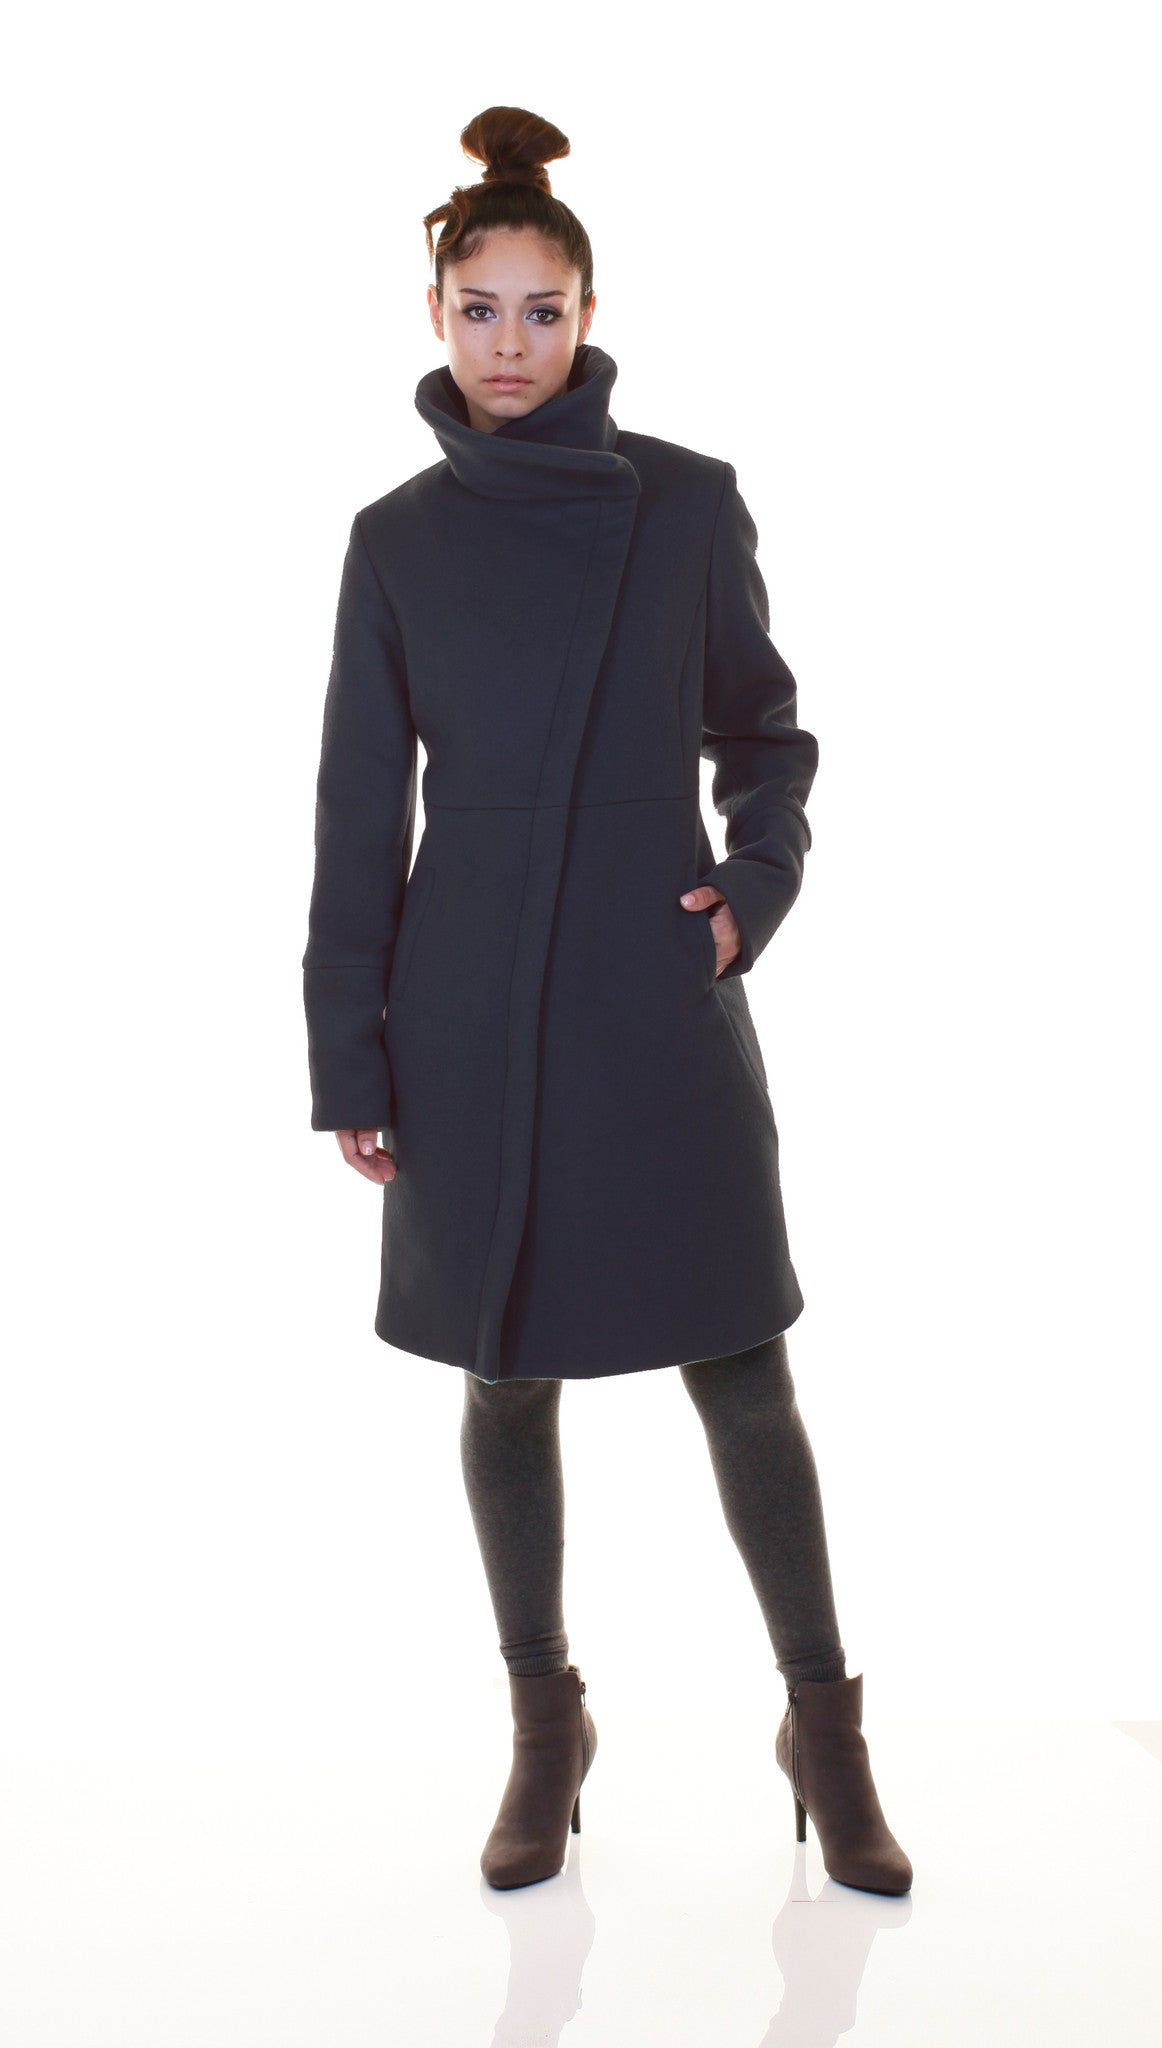 High Collar thinsulated zip coat: Charcoal